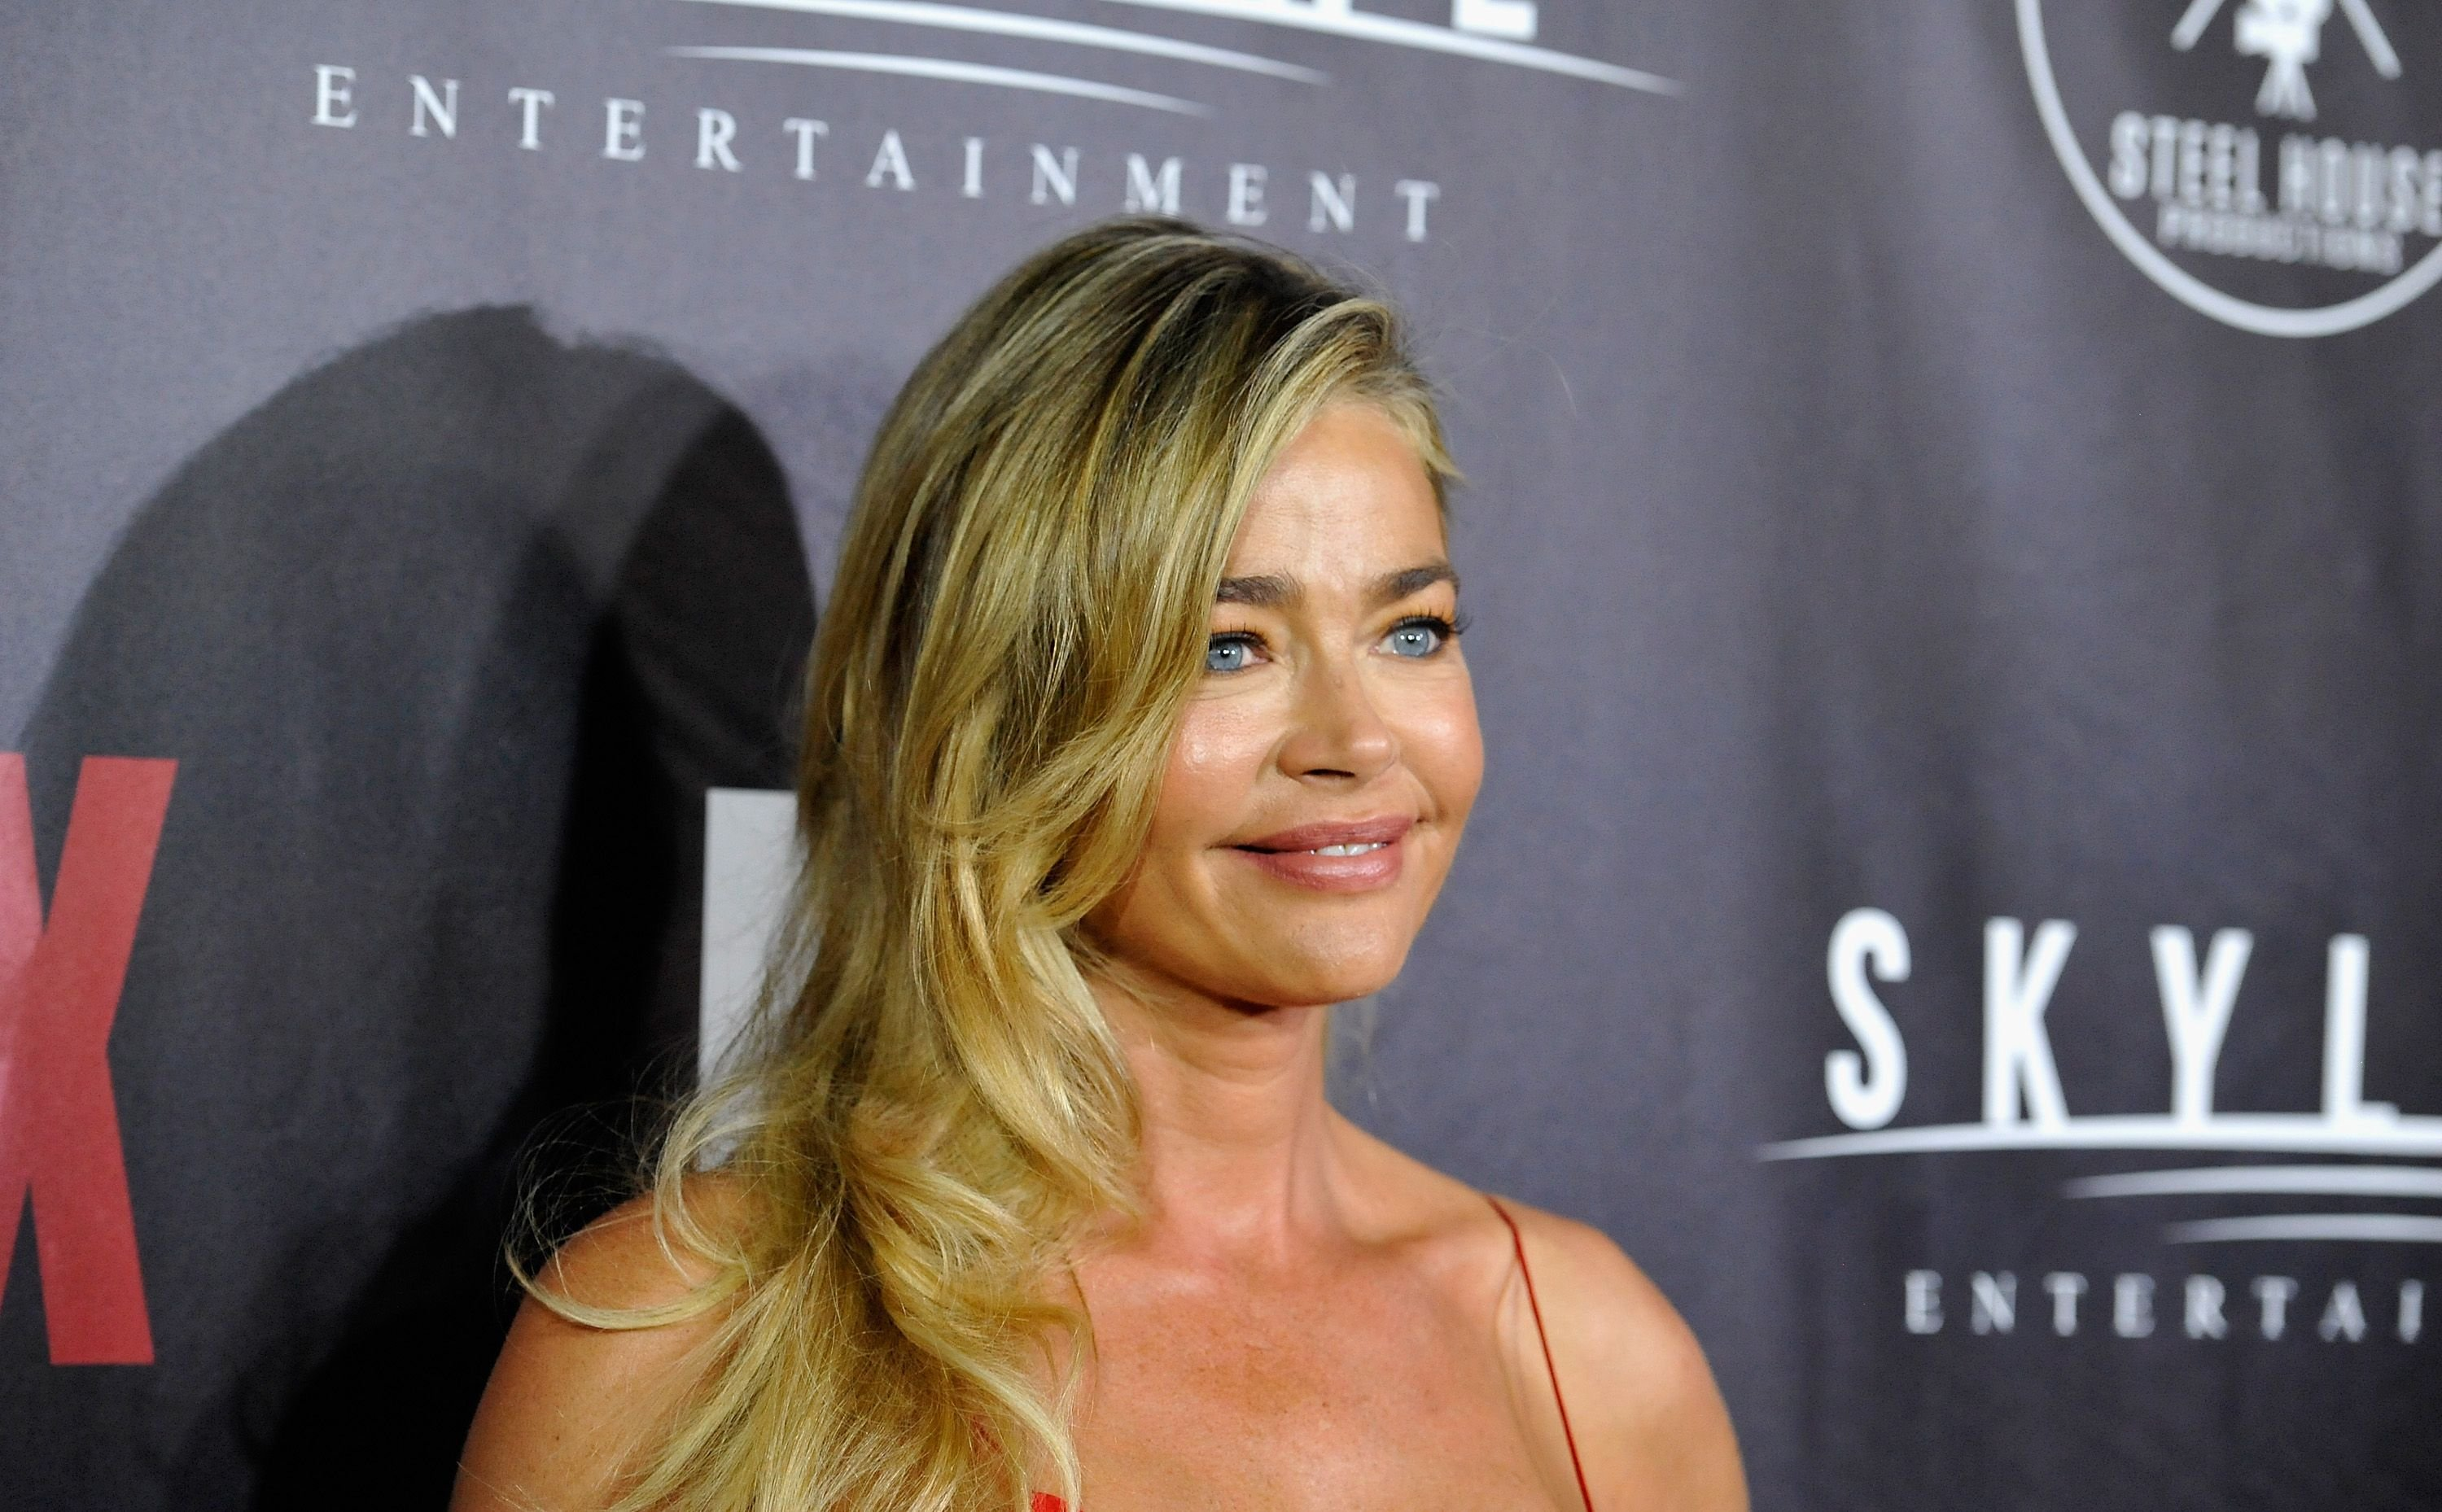 """Denise Richards during the premiere of Skyline Entertainment's """"The Toybox"""" at Laemmle's NoHo 7 on September 14, 2018 in North Hollywood, California. 